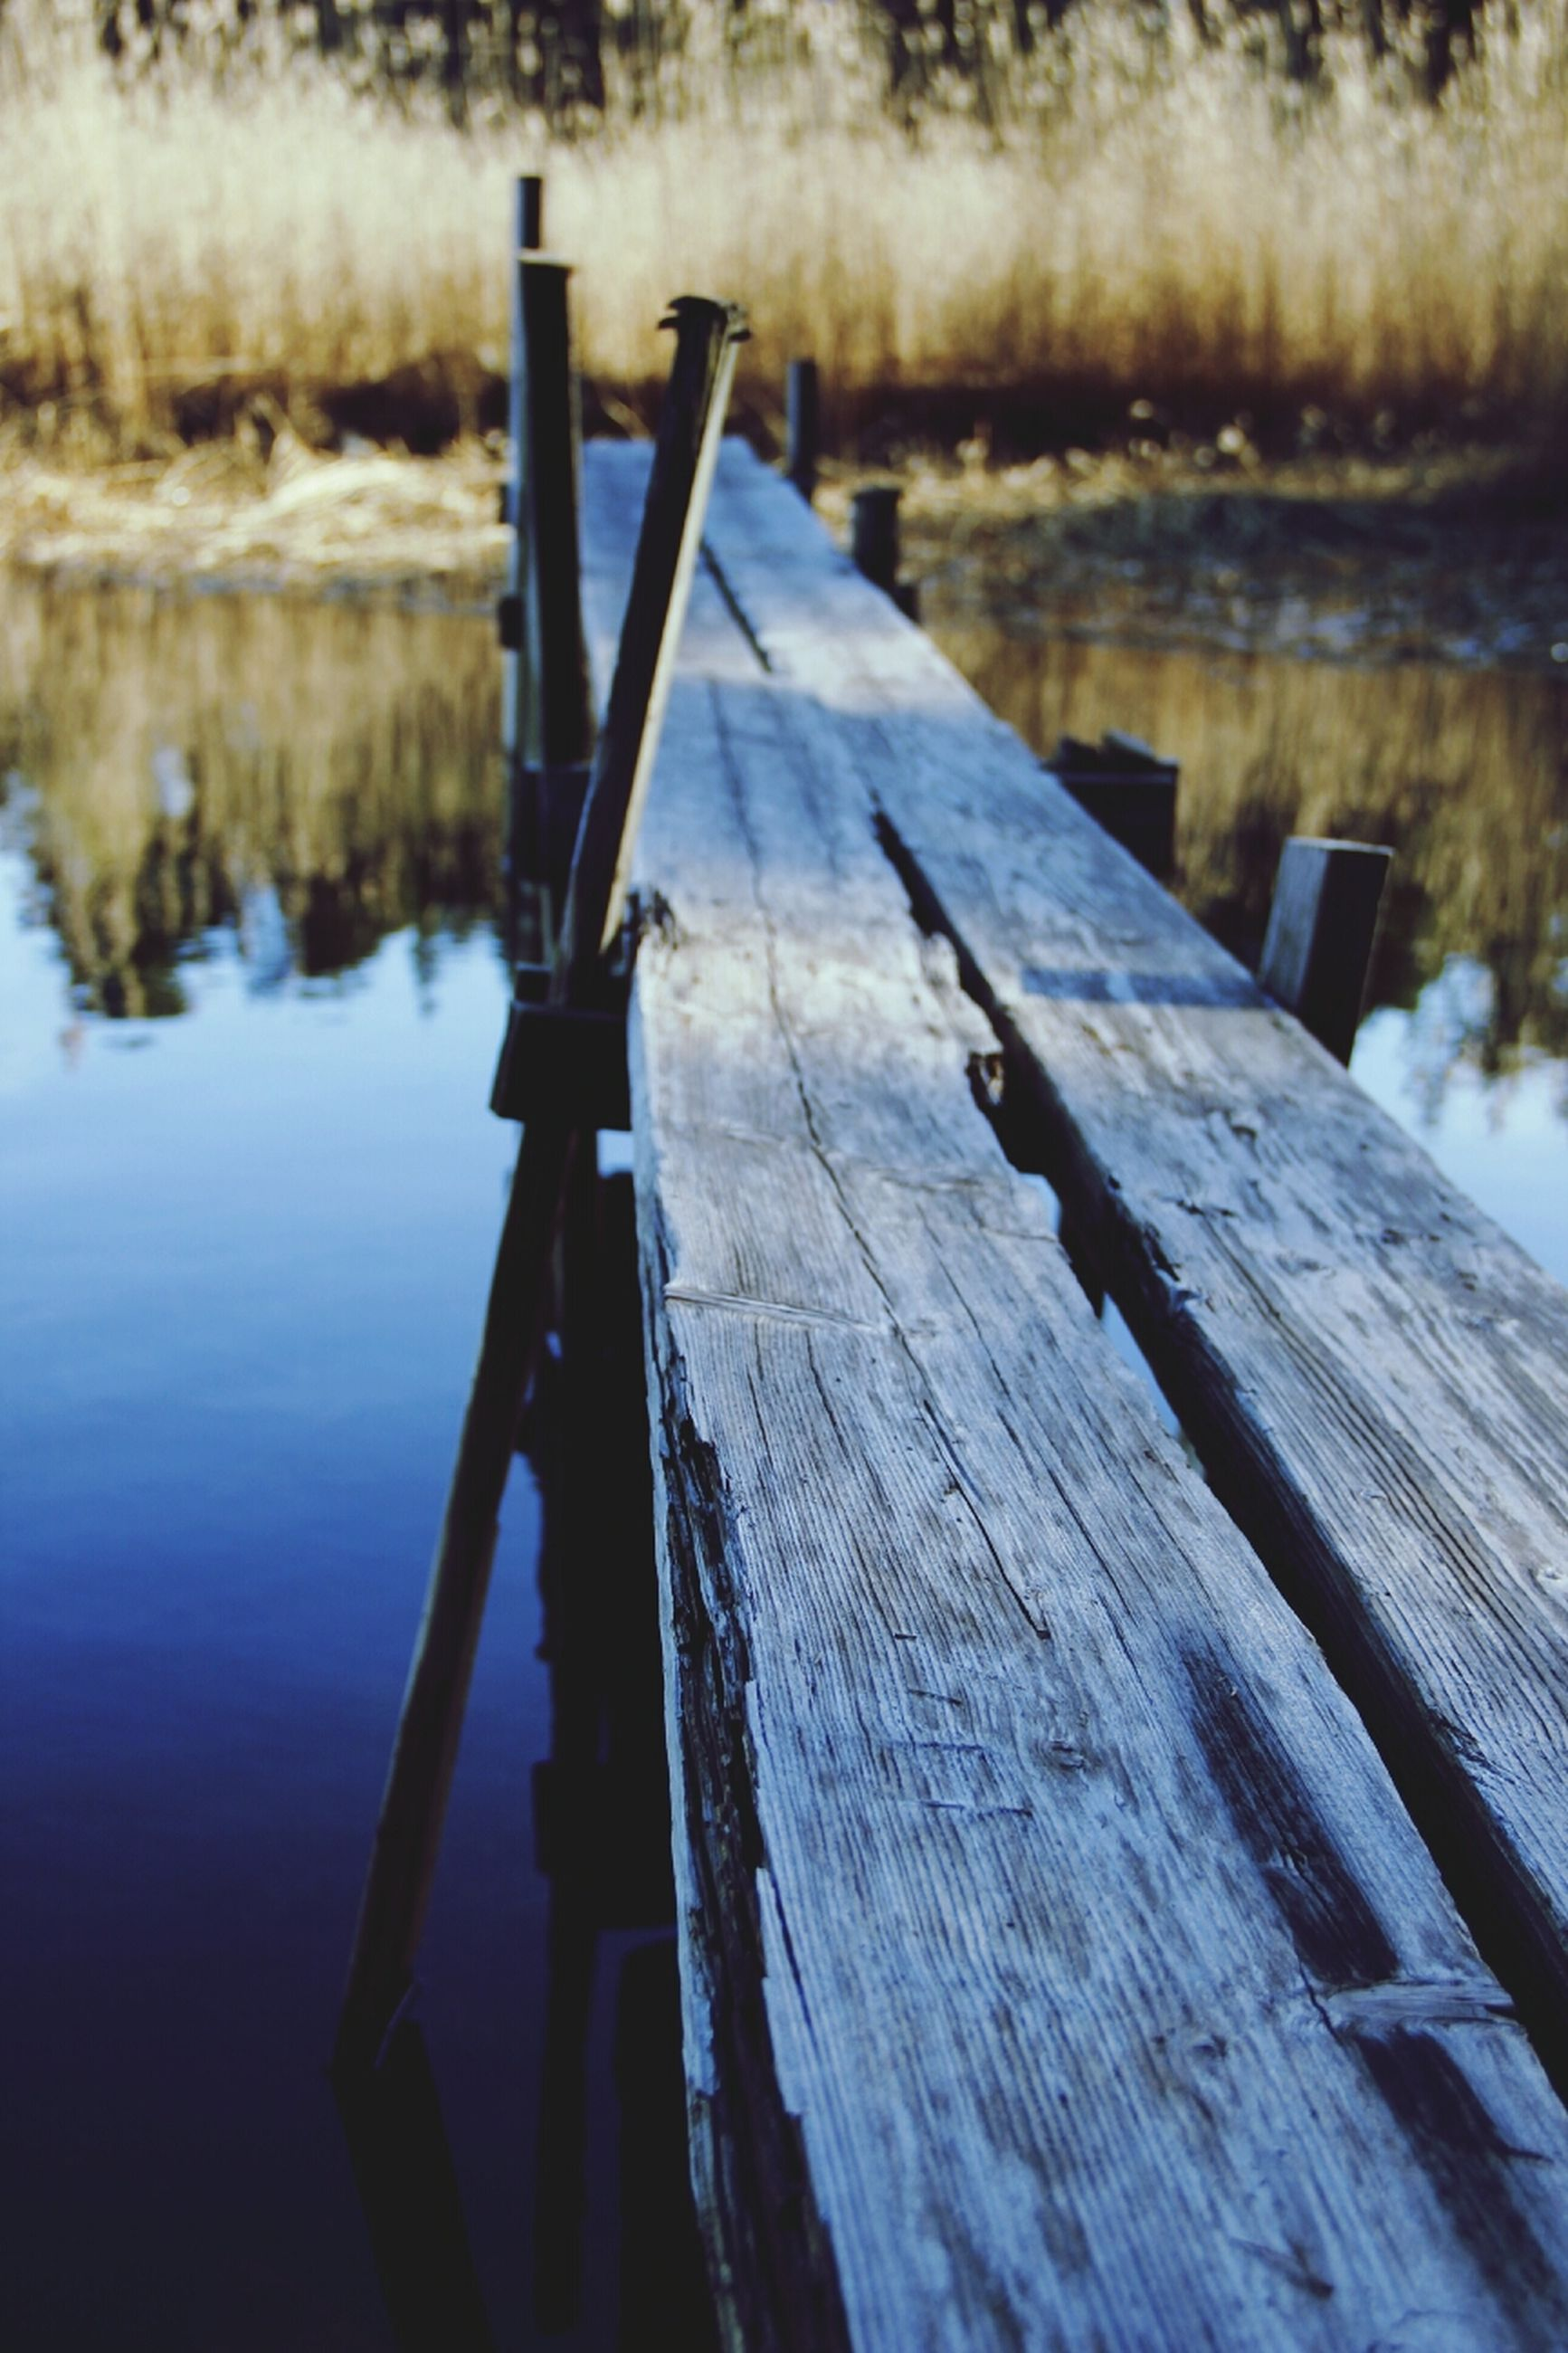 water, lake, wood - material, reflection, pier, nautical vessel, rope, river, wooden, wood, wooden post, boat, focus on foreground, day, close-up, nature, tranquility, outdoors, jetty, rippled